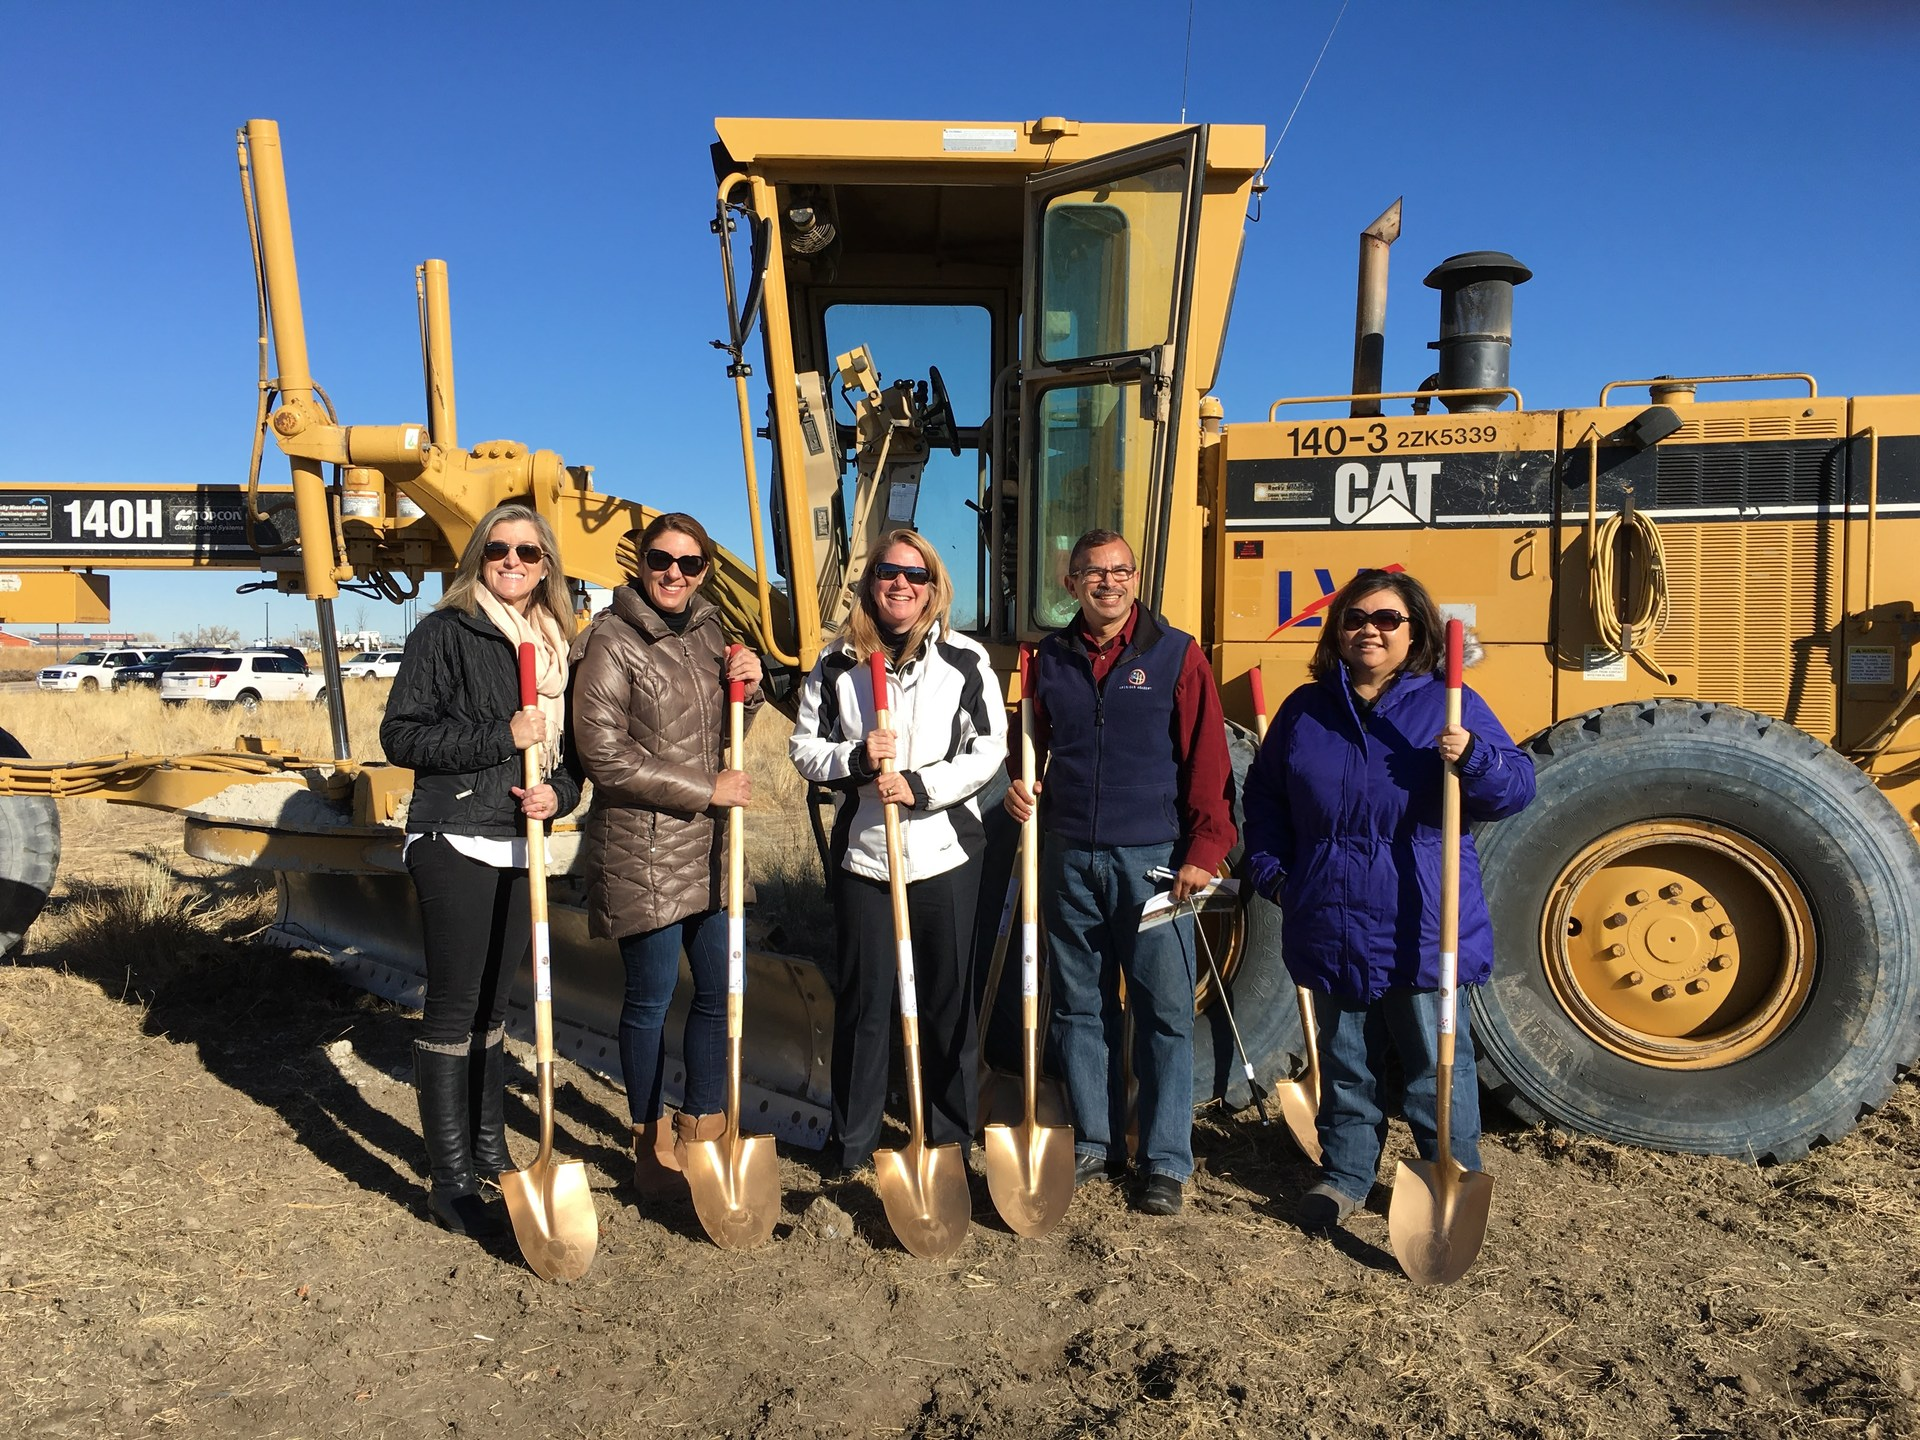 The Board of Directors stands smiling in front of a yellow construction vehicle holding shovels